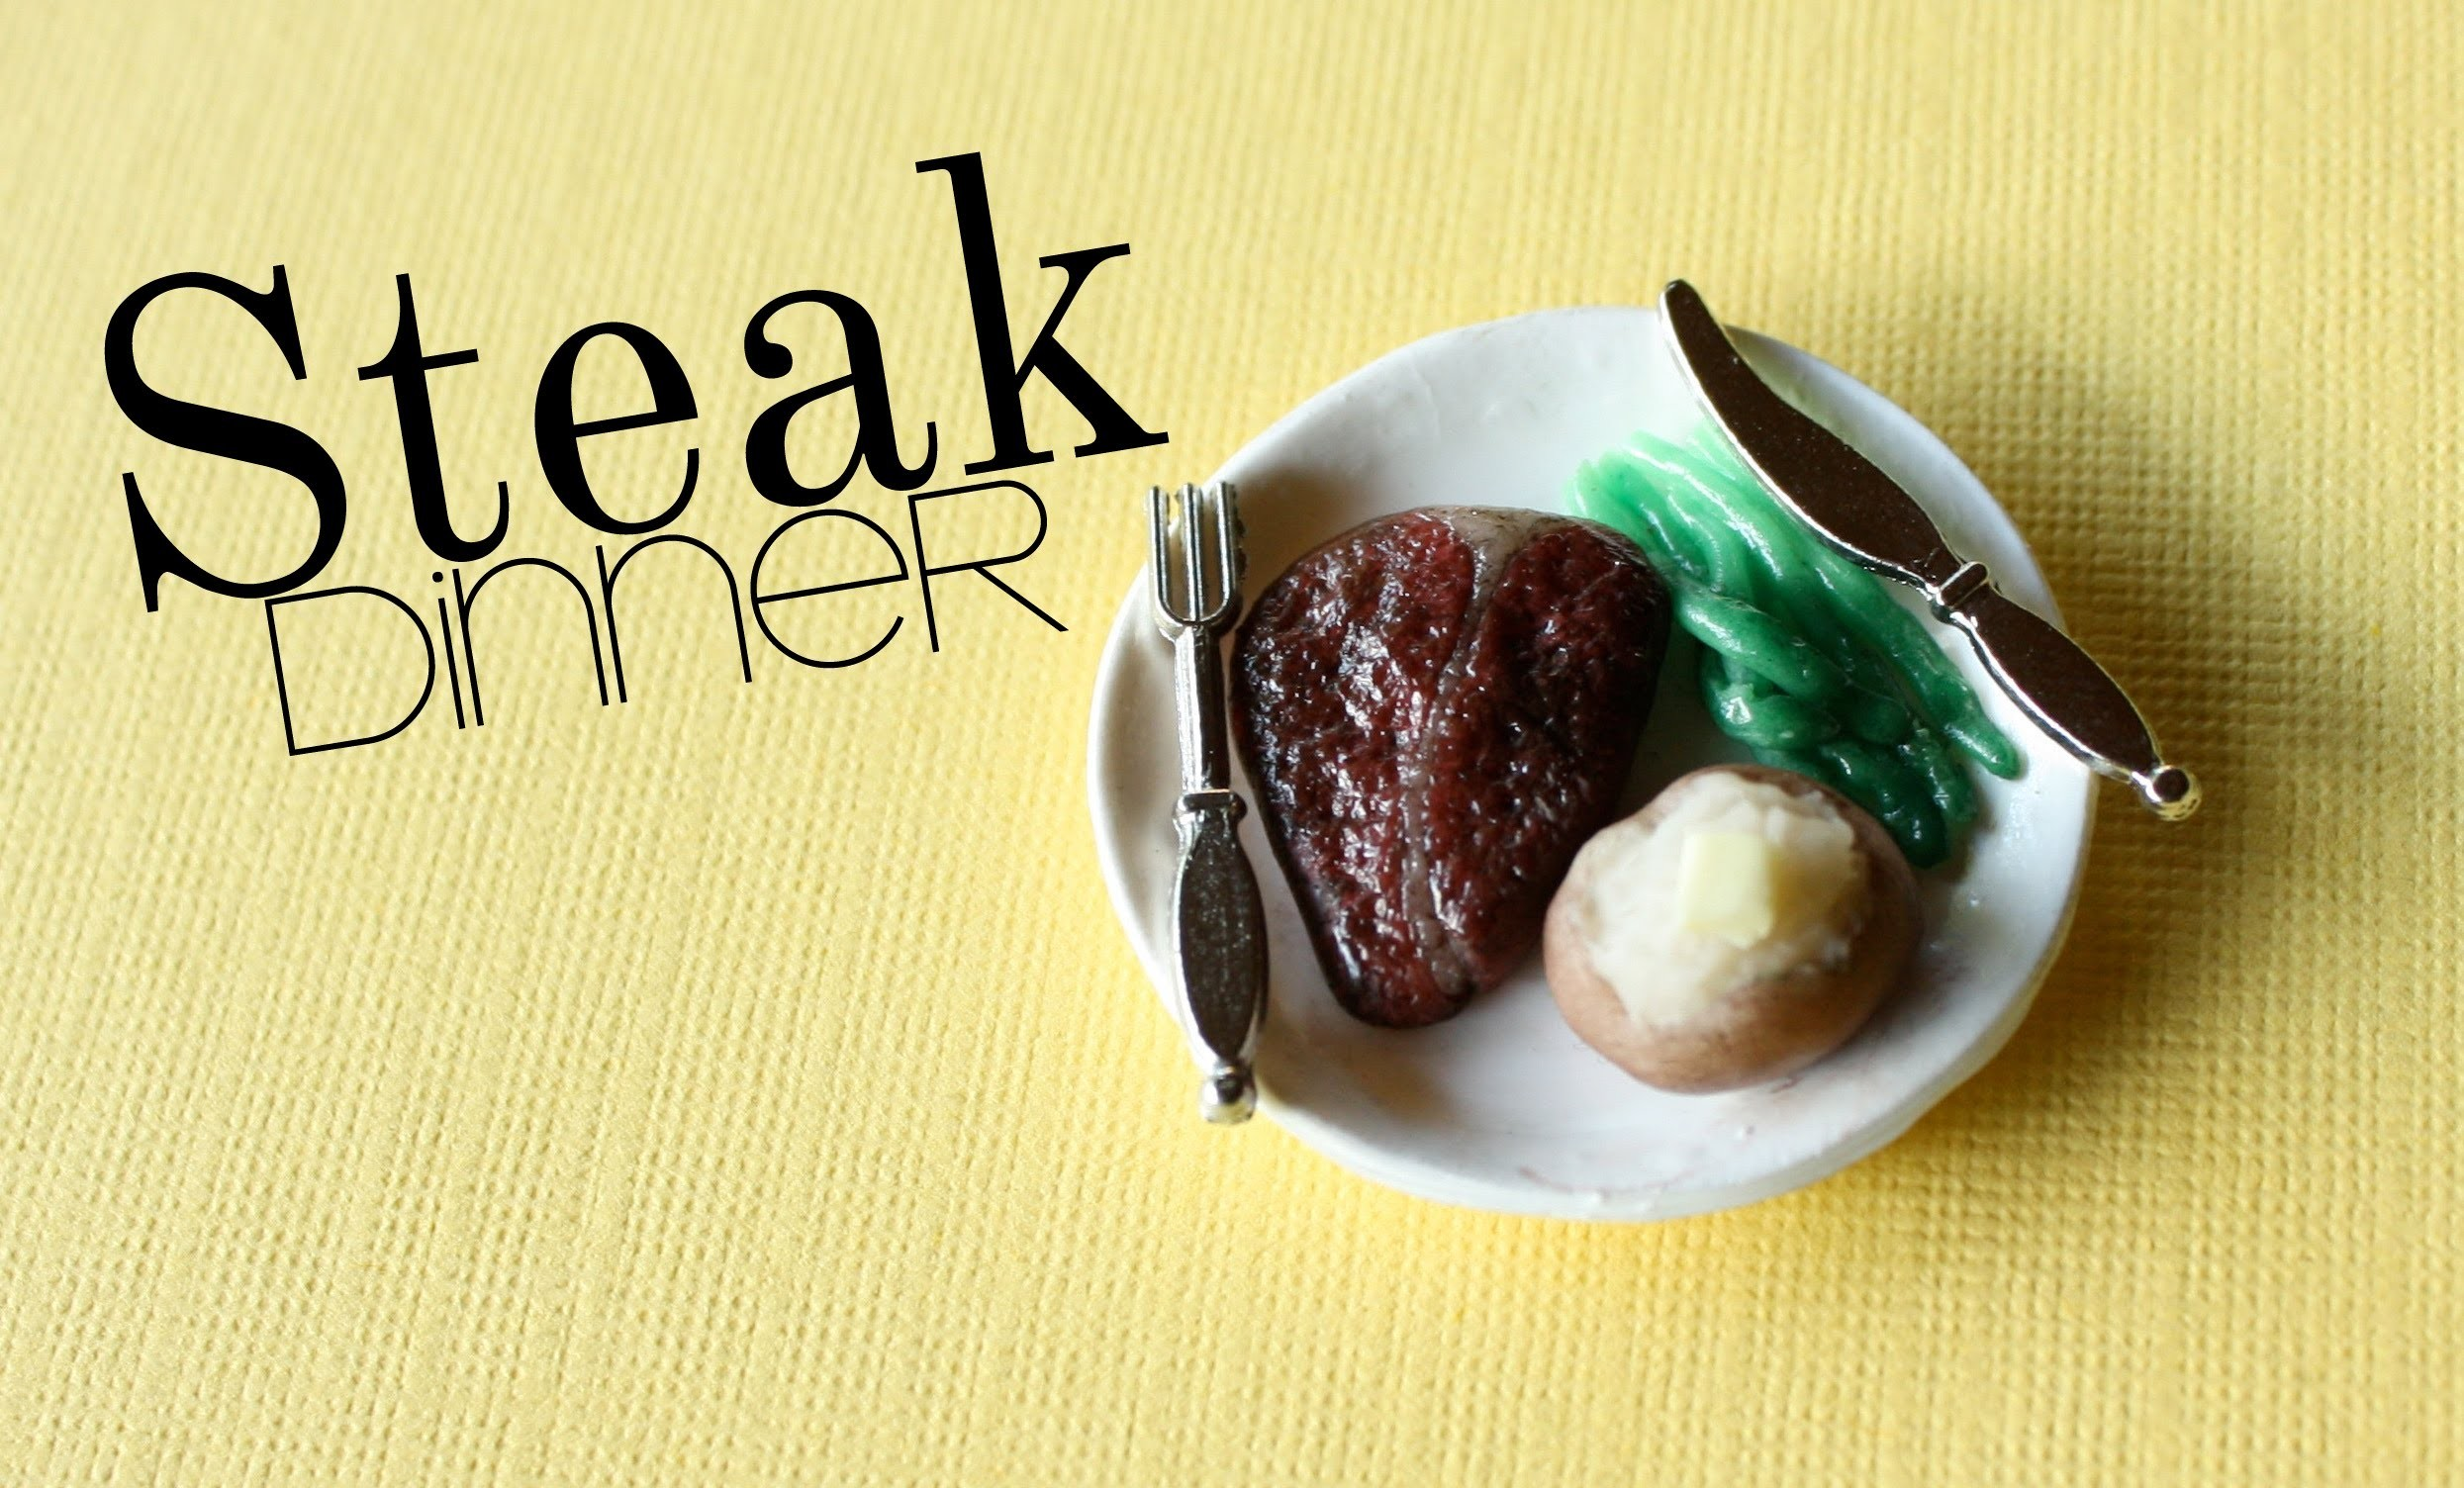 Steak Dinner - Polymer Clay Plate, Meat, Asparagus, & Baked Potatoe Tutorial